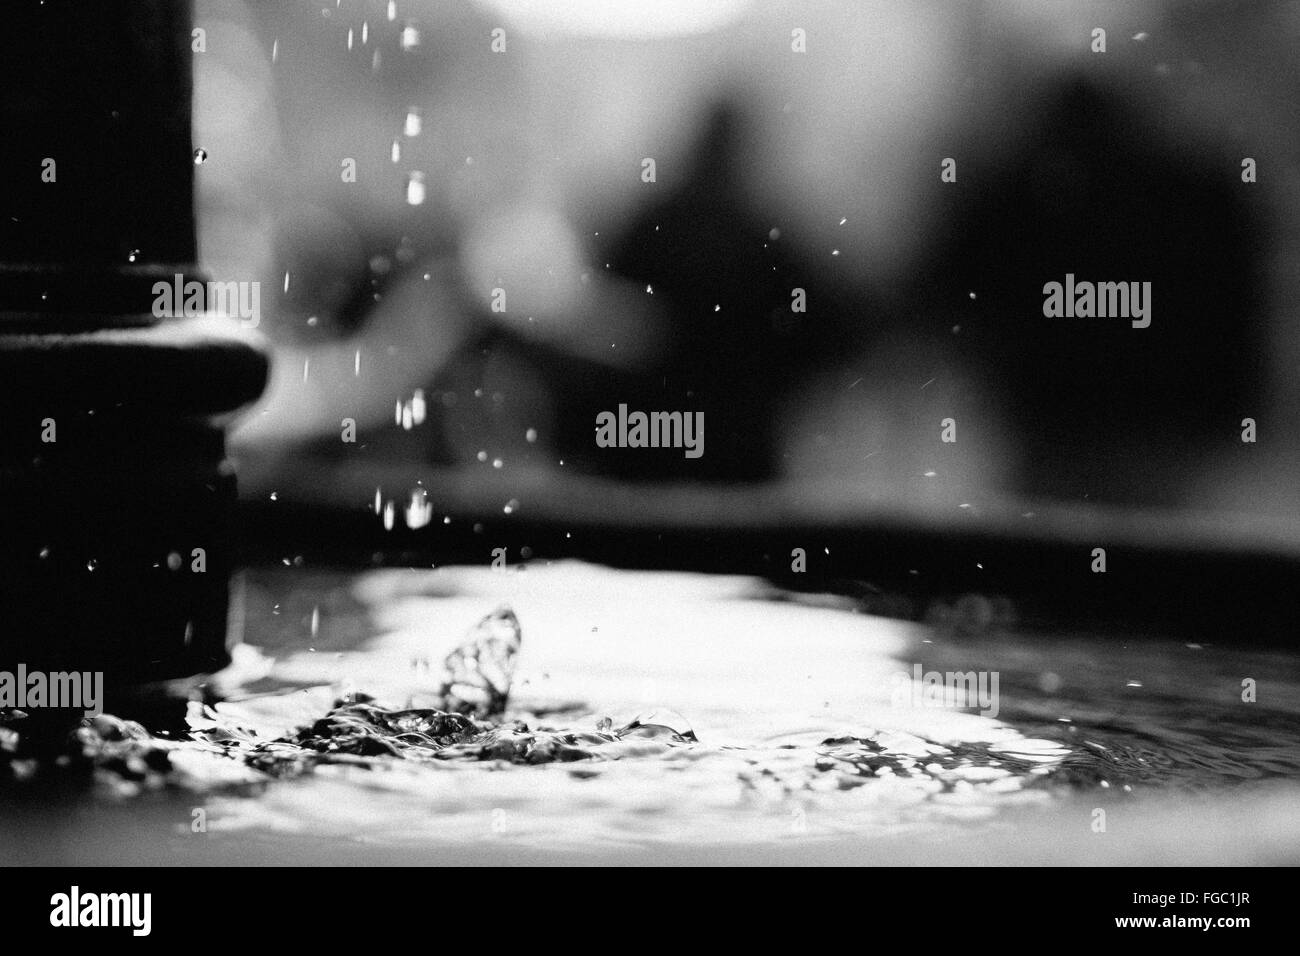 Dripping Water Black and White Stock Photos & Images - Alamy